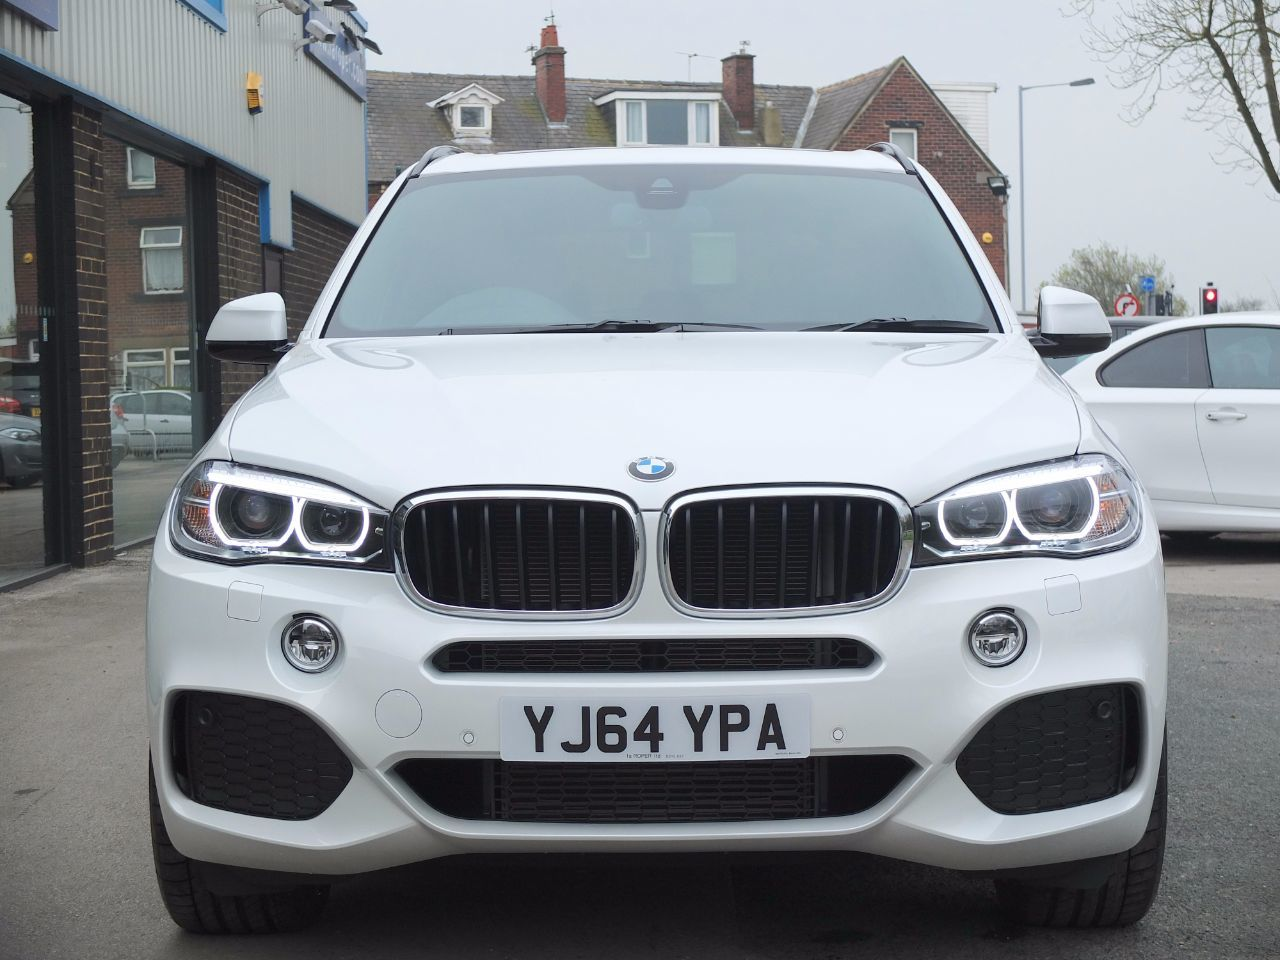 BMW X5 3.0 xDrive30d M Sport Auto 7 Seat, Pan Roof ++ Spec Estate Diesel Mineral White Metallic